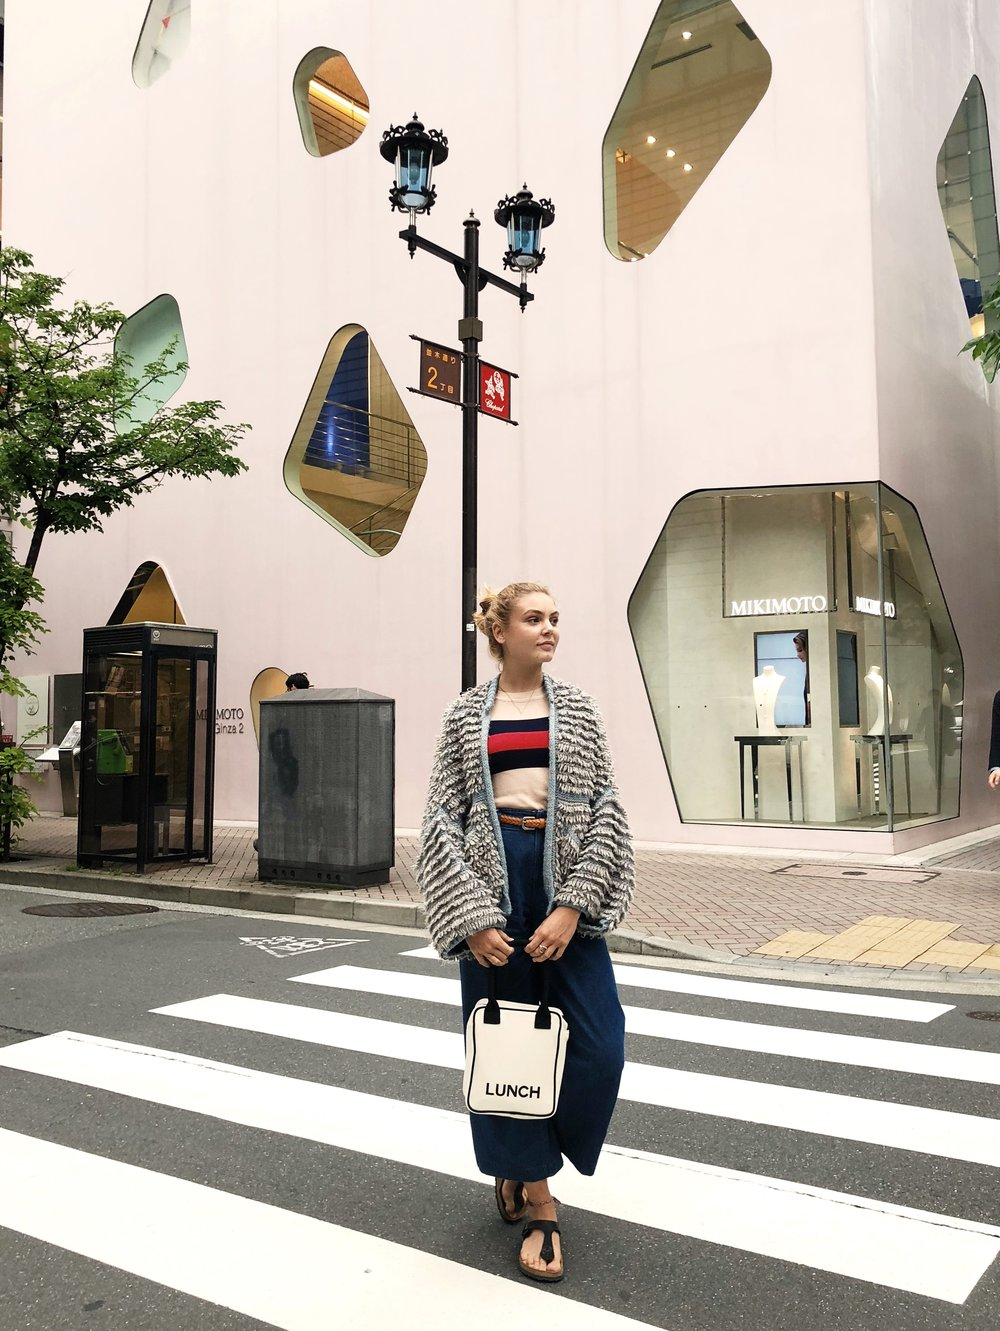 2.shop GINZa - You can't really talk about Tokyo and not mention the shopping. There are tons of innovative concepts stores and many shopping areas. Here are our favorite places in the fancy are of Ginza:Kitte located by Tokyo Station is a large shopping mall with really cute stores featuring smaller brands.Tokyu Plaza Ginza is another big mall with smaller, innovative brands.We also love Mujis large concept store in Ginza. Here you can find all things Muji including furniture, books, stationary, clothes, restaurant and even bikes.Celeste bringing her lunch around town in Bag-alls Lunch box.